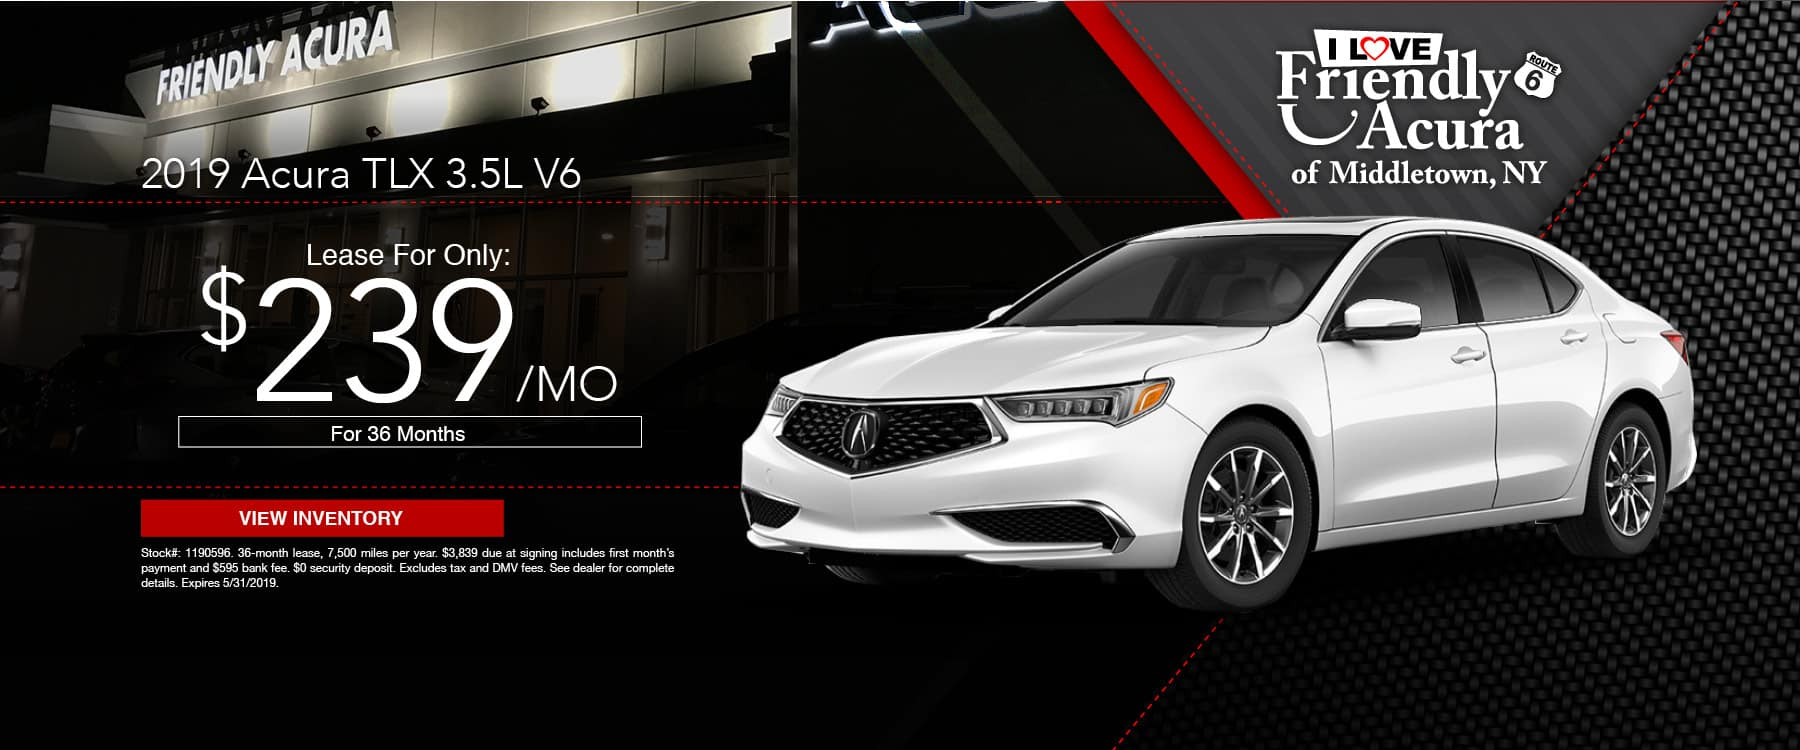 Drive a Friendly Acura TLX for just $239 a month!